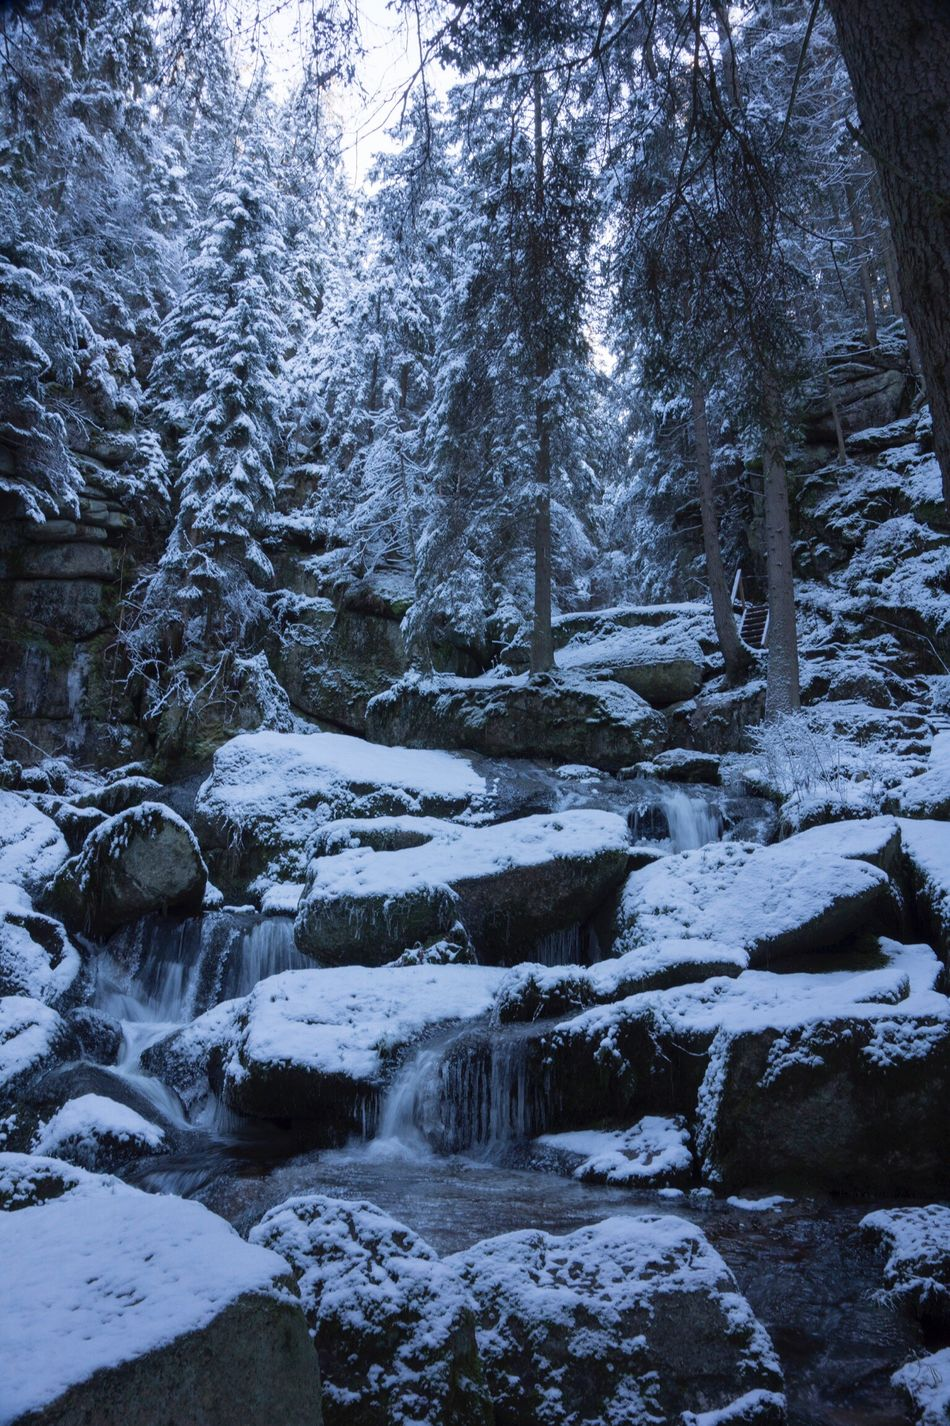 Tree Cold Temperature Winter Nature Forest Beauty In Nature Scenics Non-urban Scene Snow Tranquility Weather Tranquil Scene Frozen Outdoors Landscape Day No People Silence Falls Winterfall Water River River View Austria